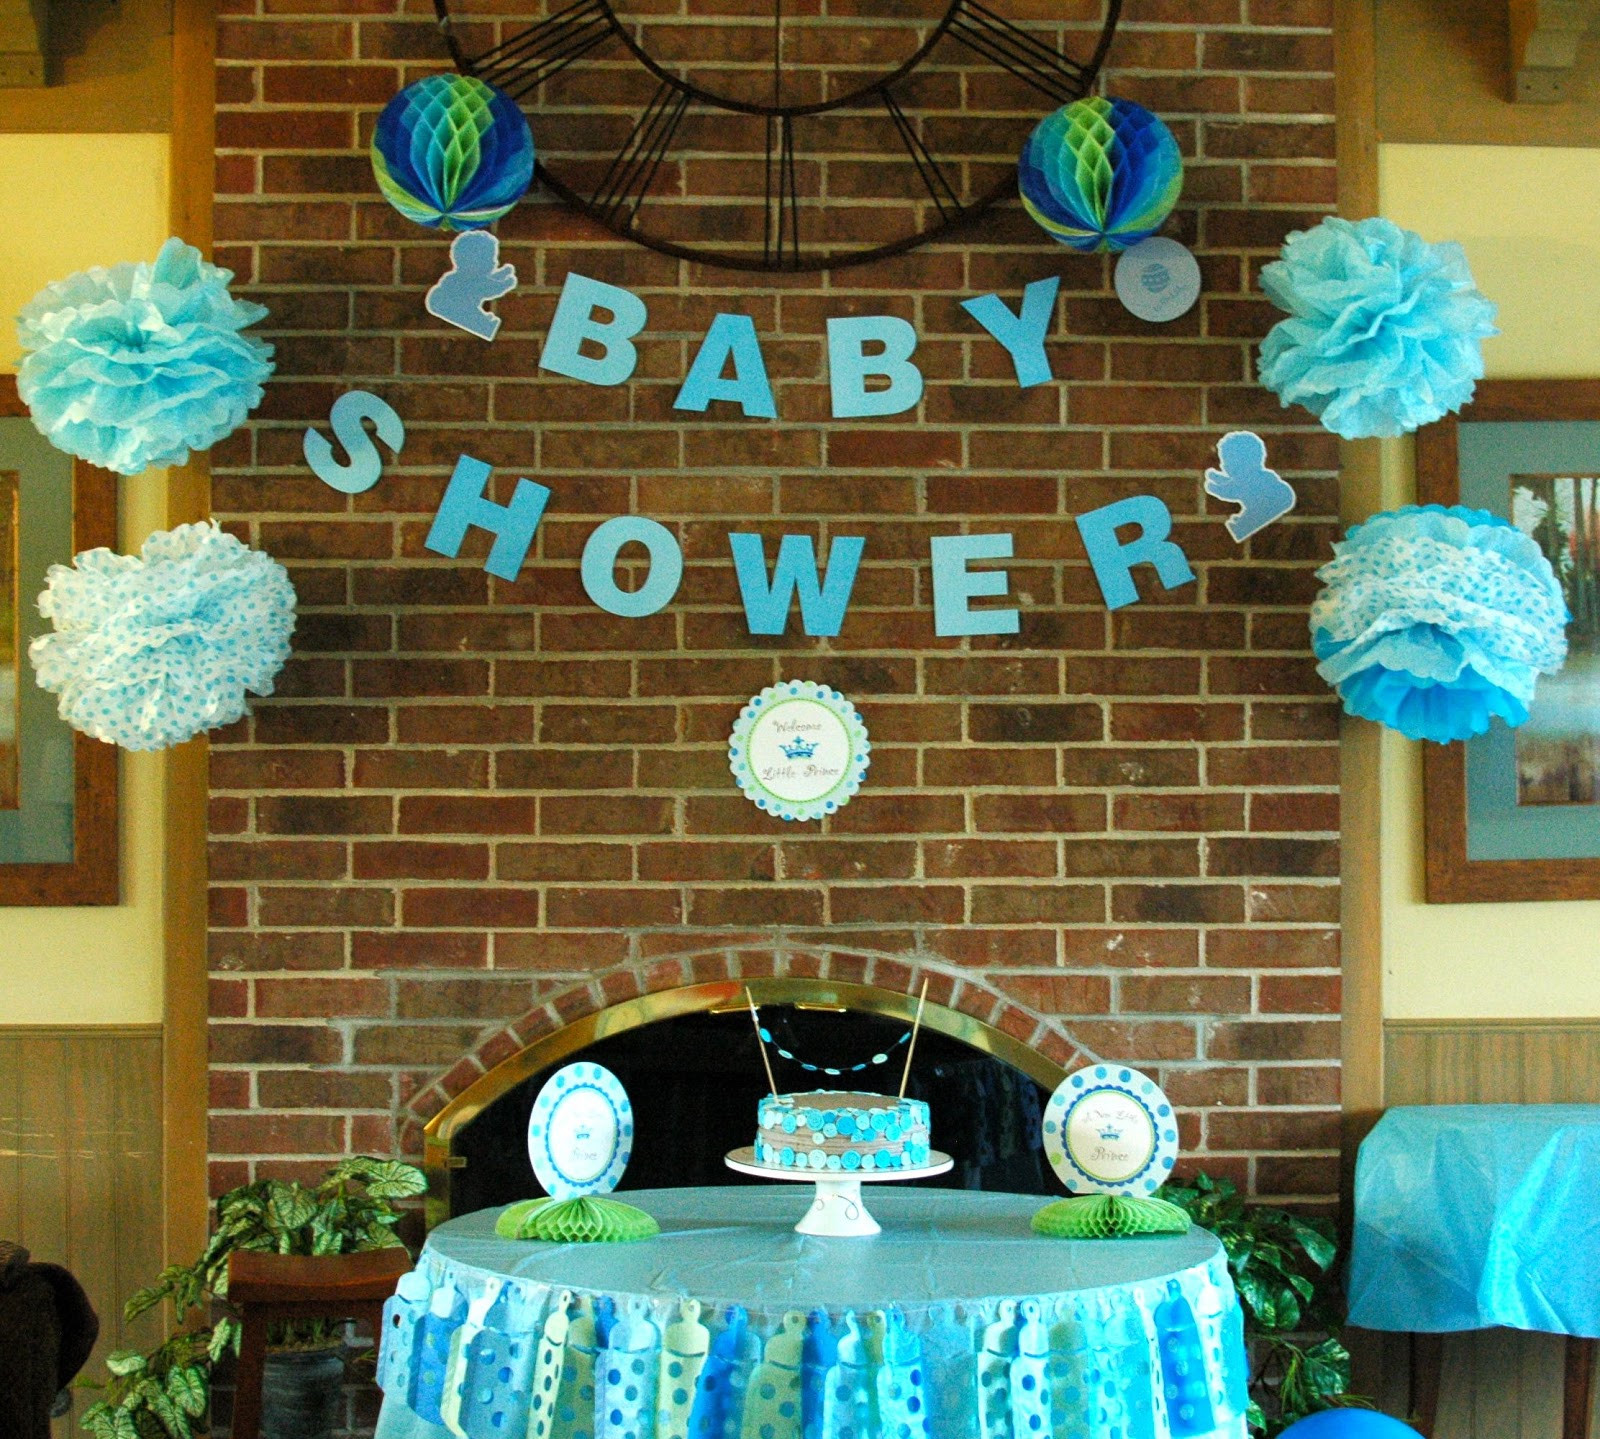 Baby Shower Decoration Ideas At Home  TurtleCraftyGirl Cute As a Button Baby Shower Cake